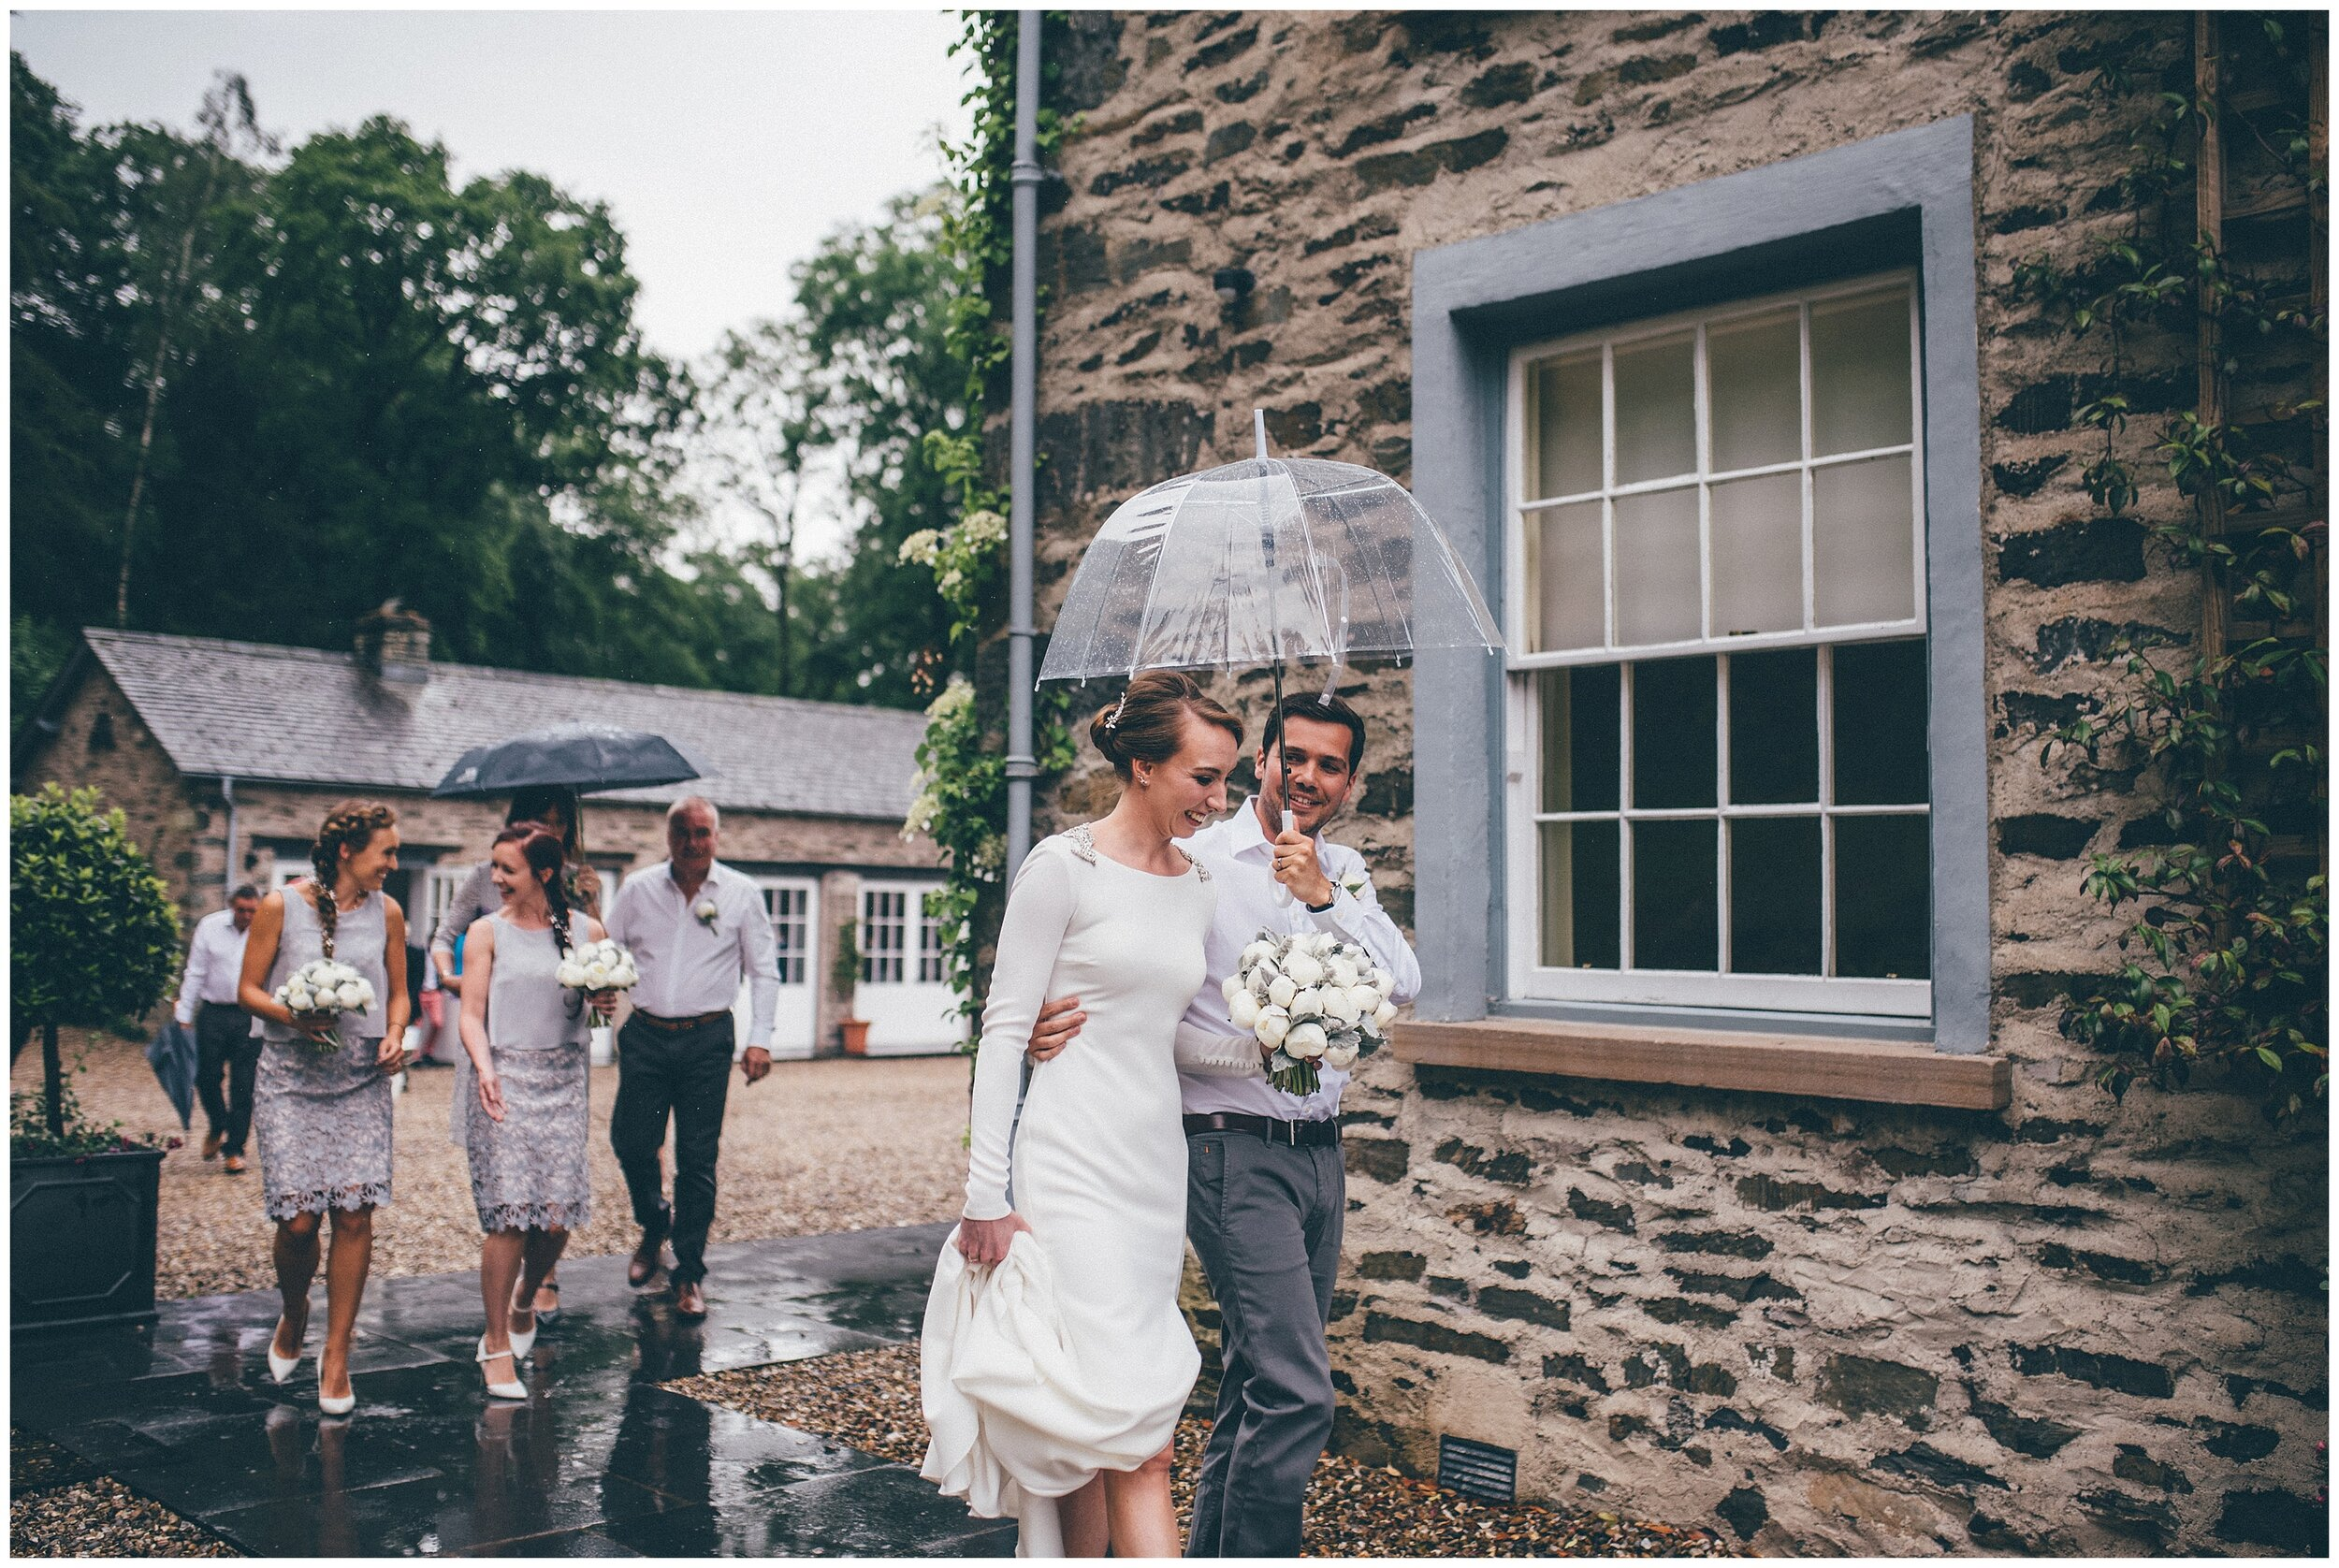 Silverholme Manor wedding photographed by Cheshire wedding photographer in the Lake District.